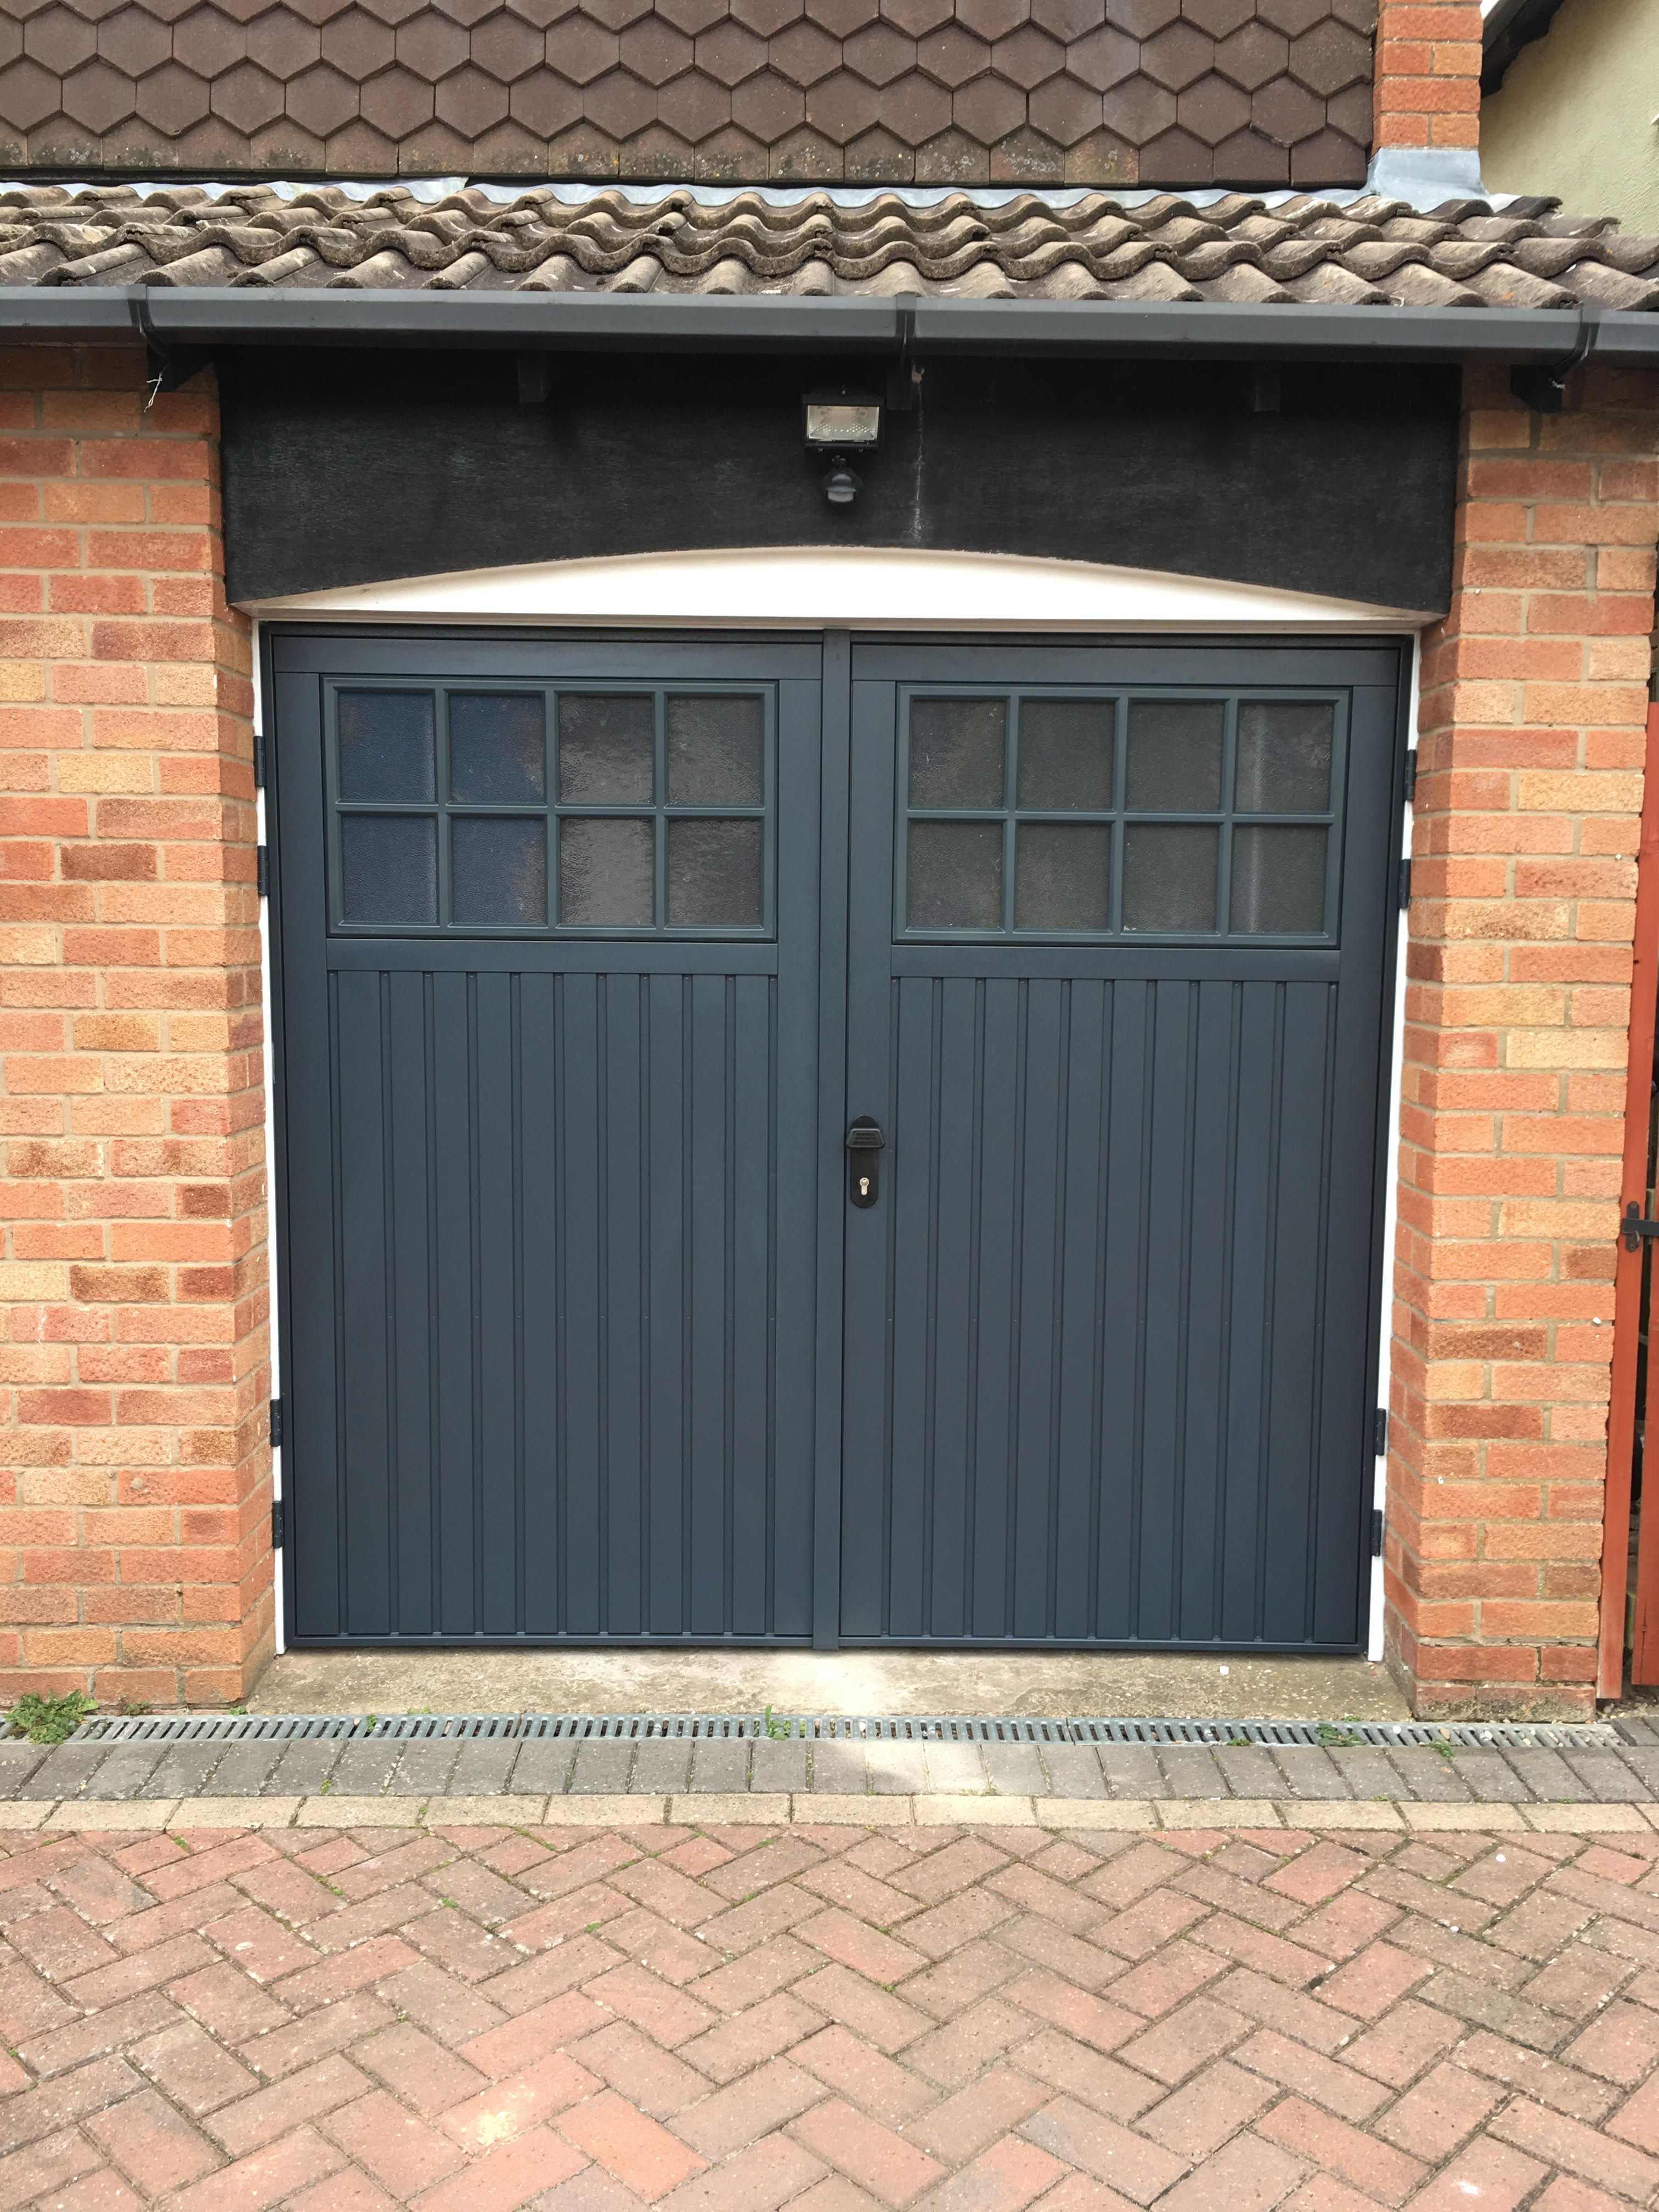 Cardale Bedford Side Hinged Garage Doors In Anthracite Grey Wooden Garage Doors Side Hinged Garage Doors Garage Door Design